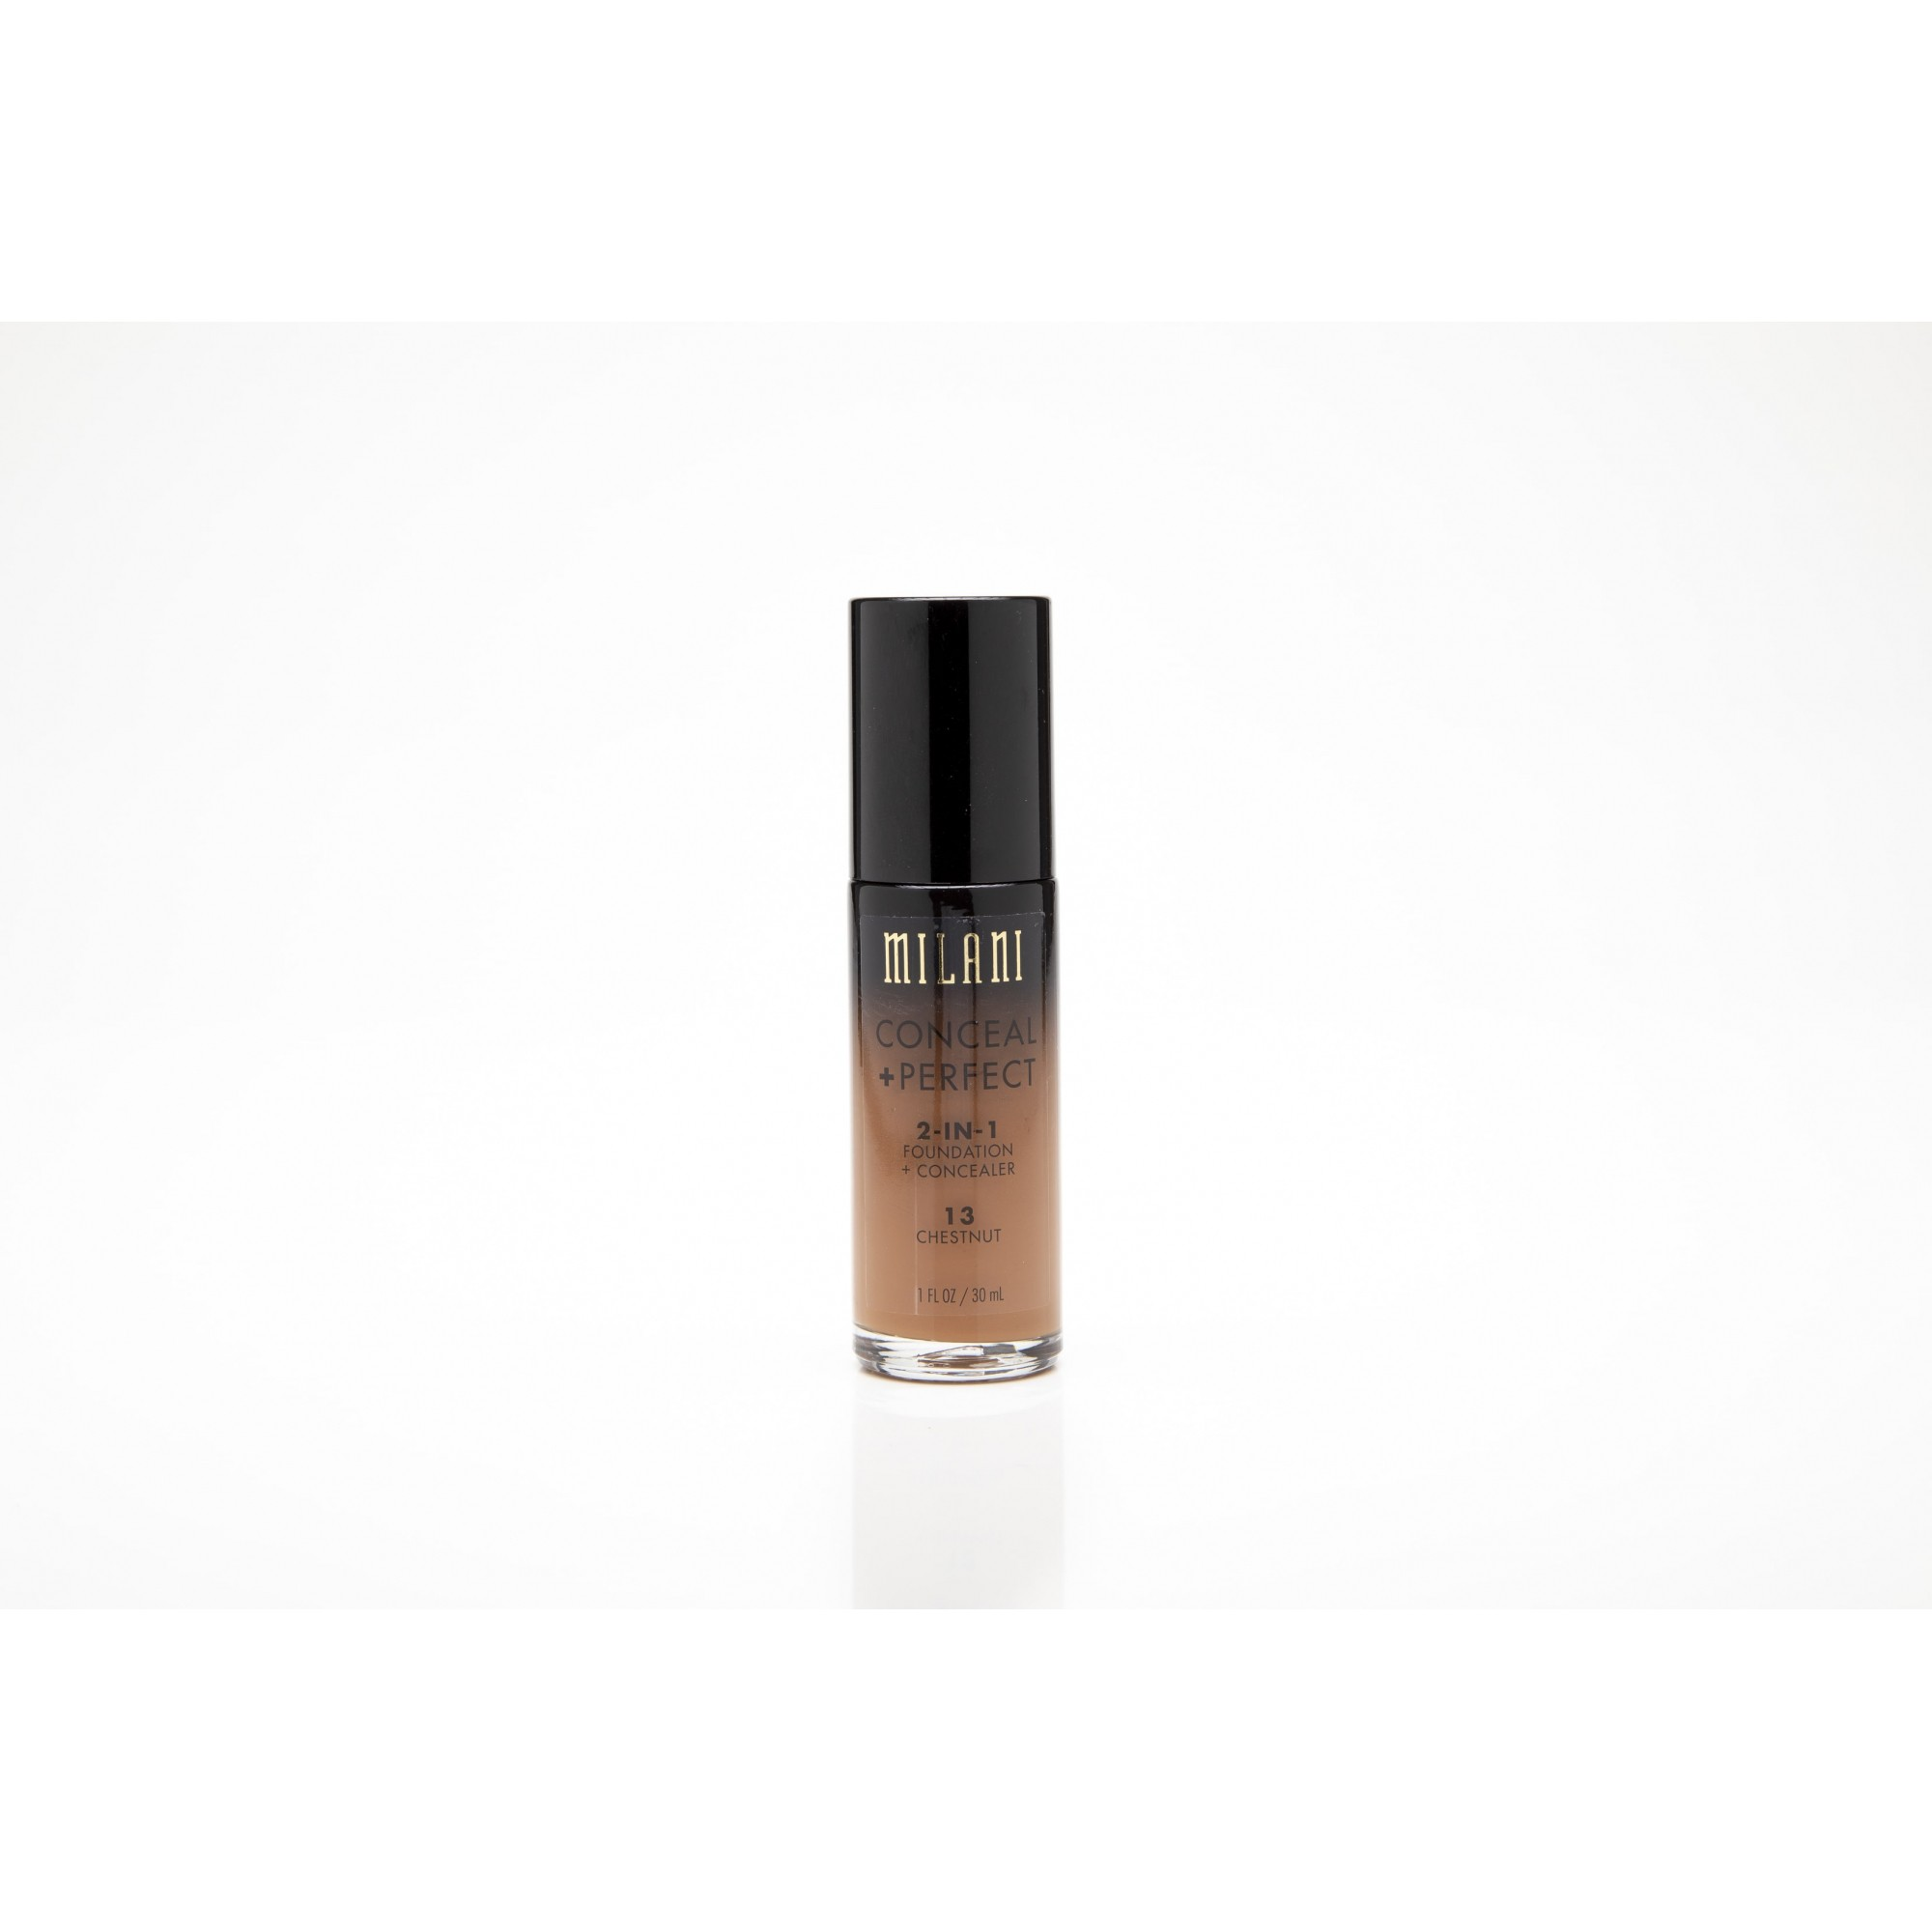 Base milani conceal + perfect 2-in-1 13 chestnut